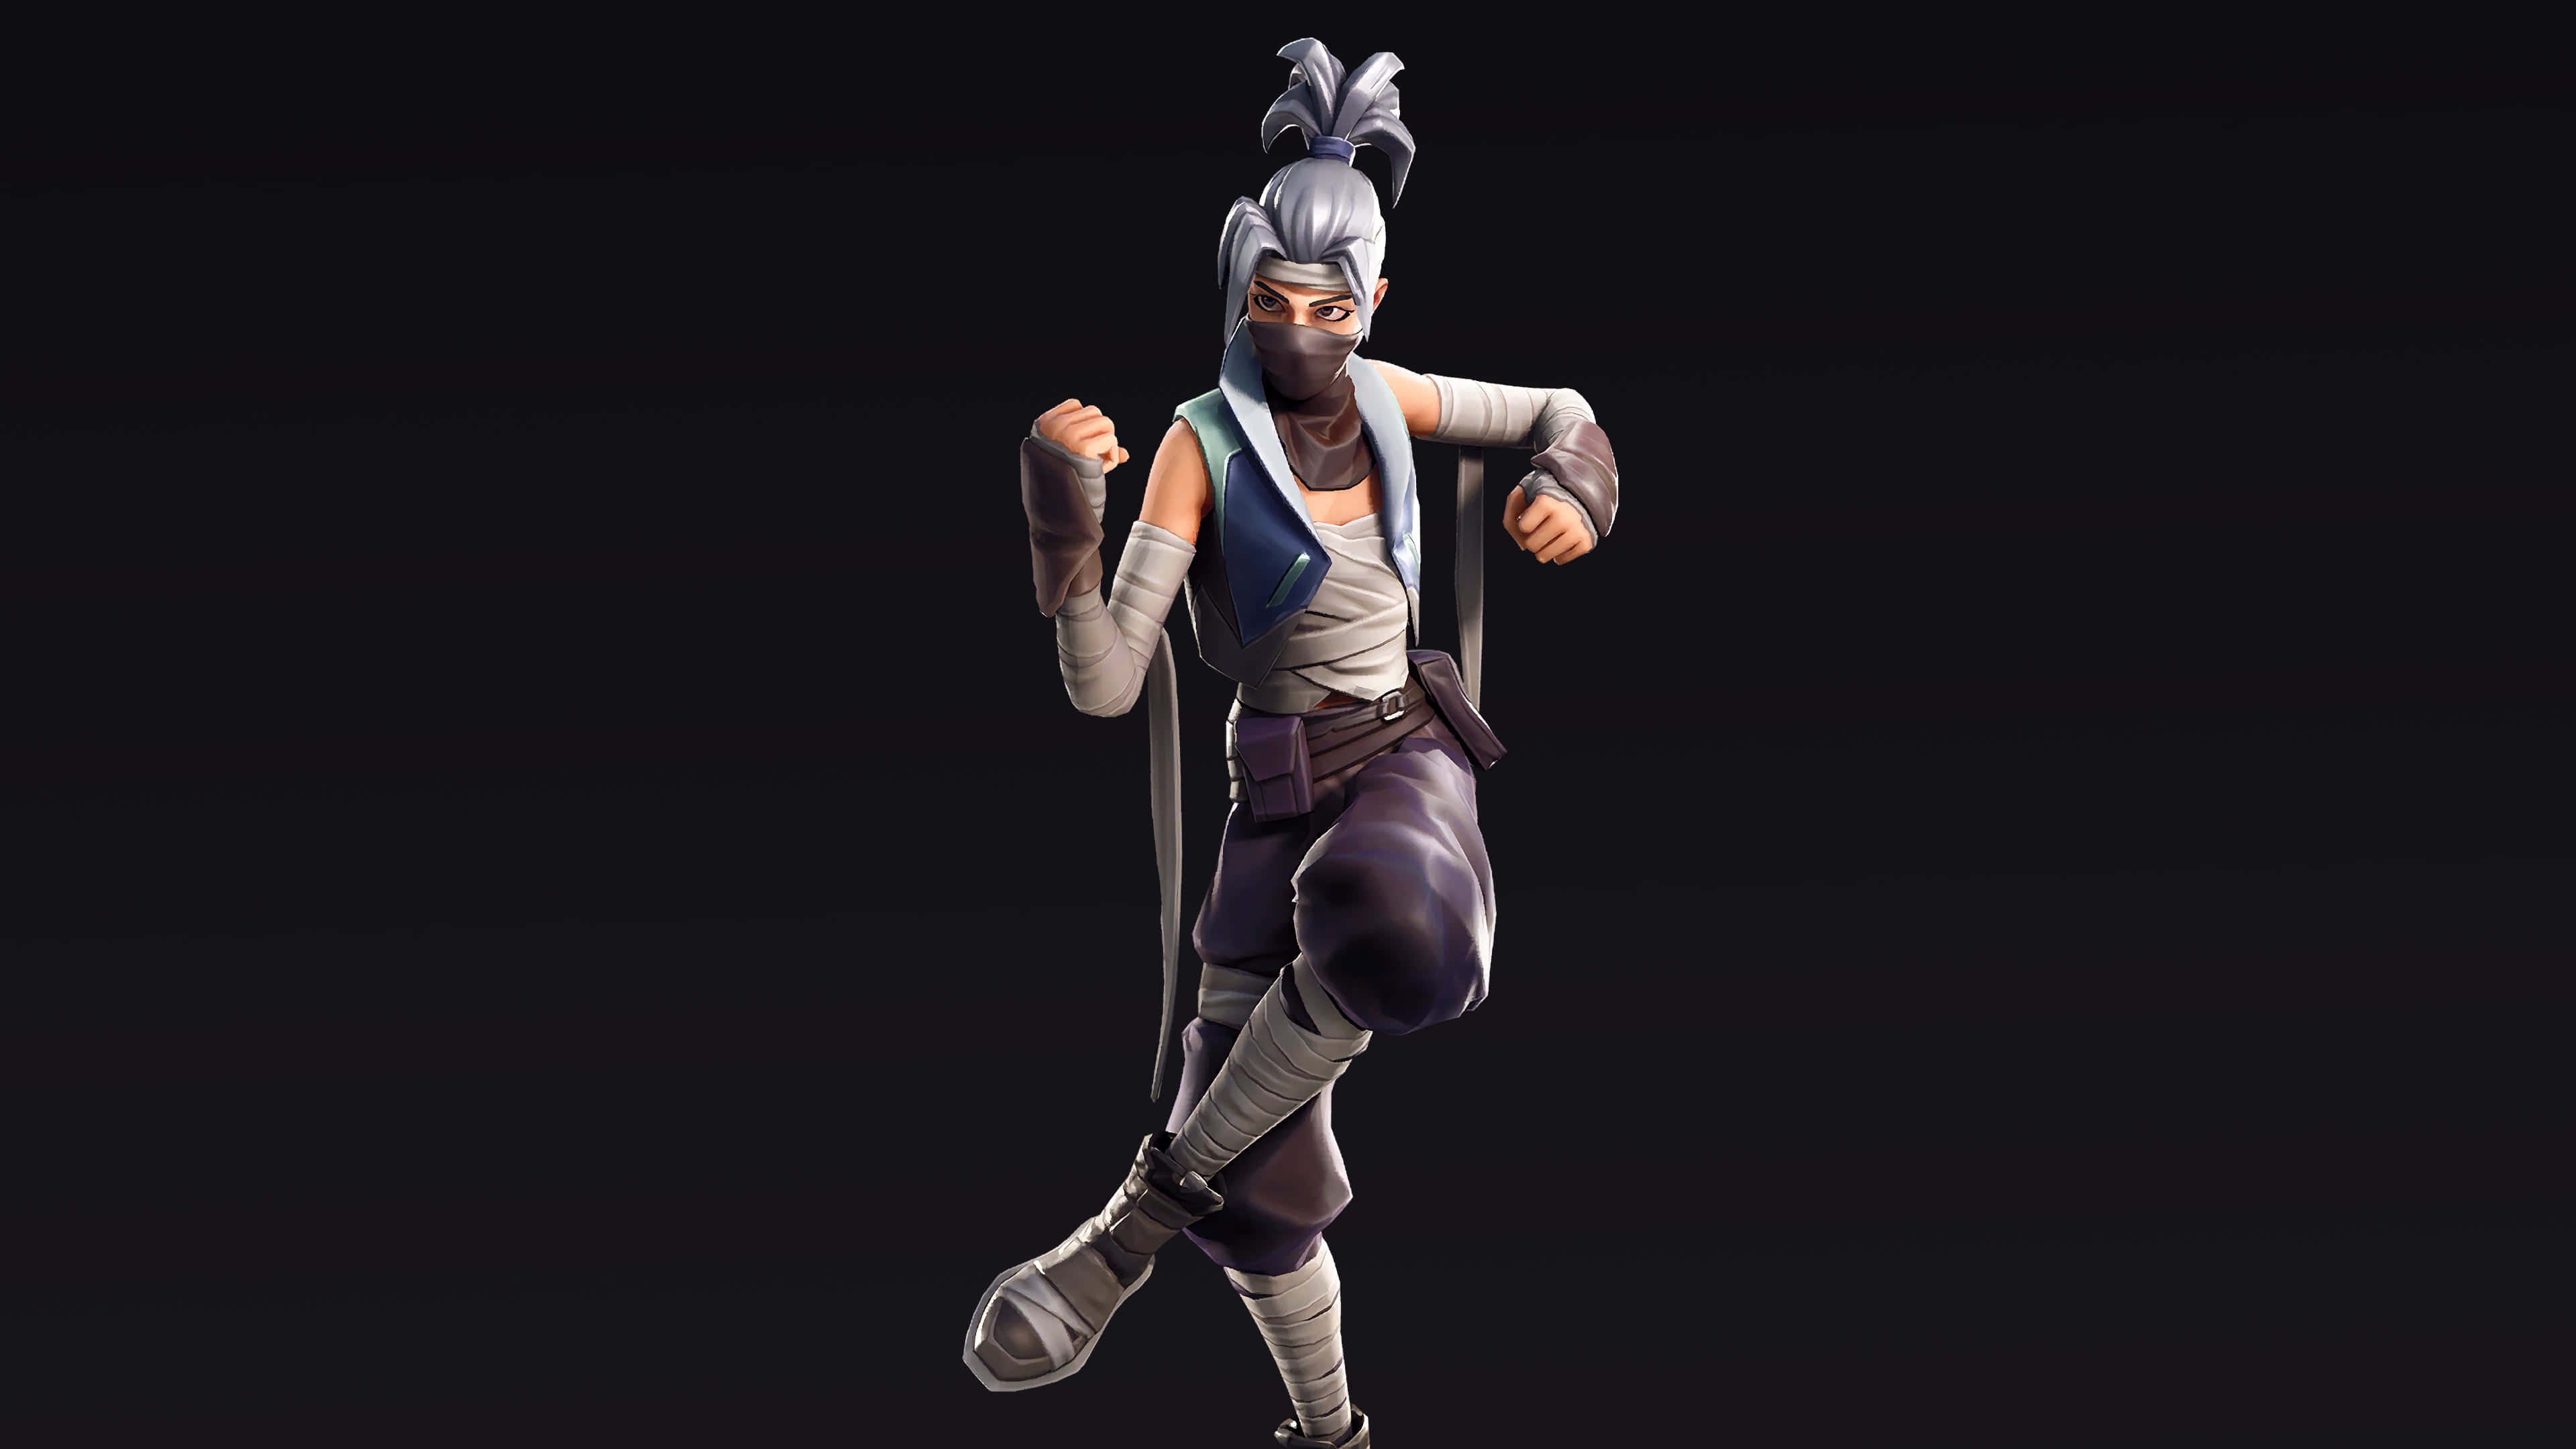 fortnite falcon clan kuno skin outfit uhd 4k wallpaper